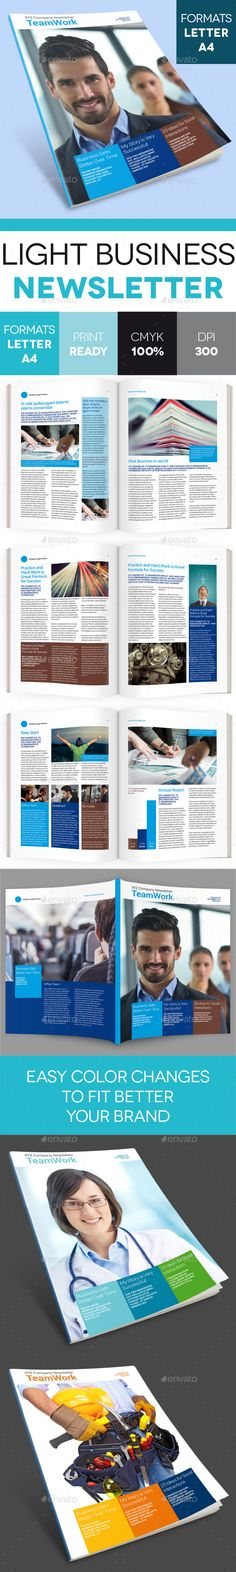 Light Business Newsletter - Newsletters Print Templates Download here : https://graphicriver.net/item/light-business-newsletter/9211959?s_rank=253&ref=Al-fatih